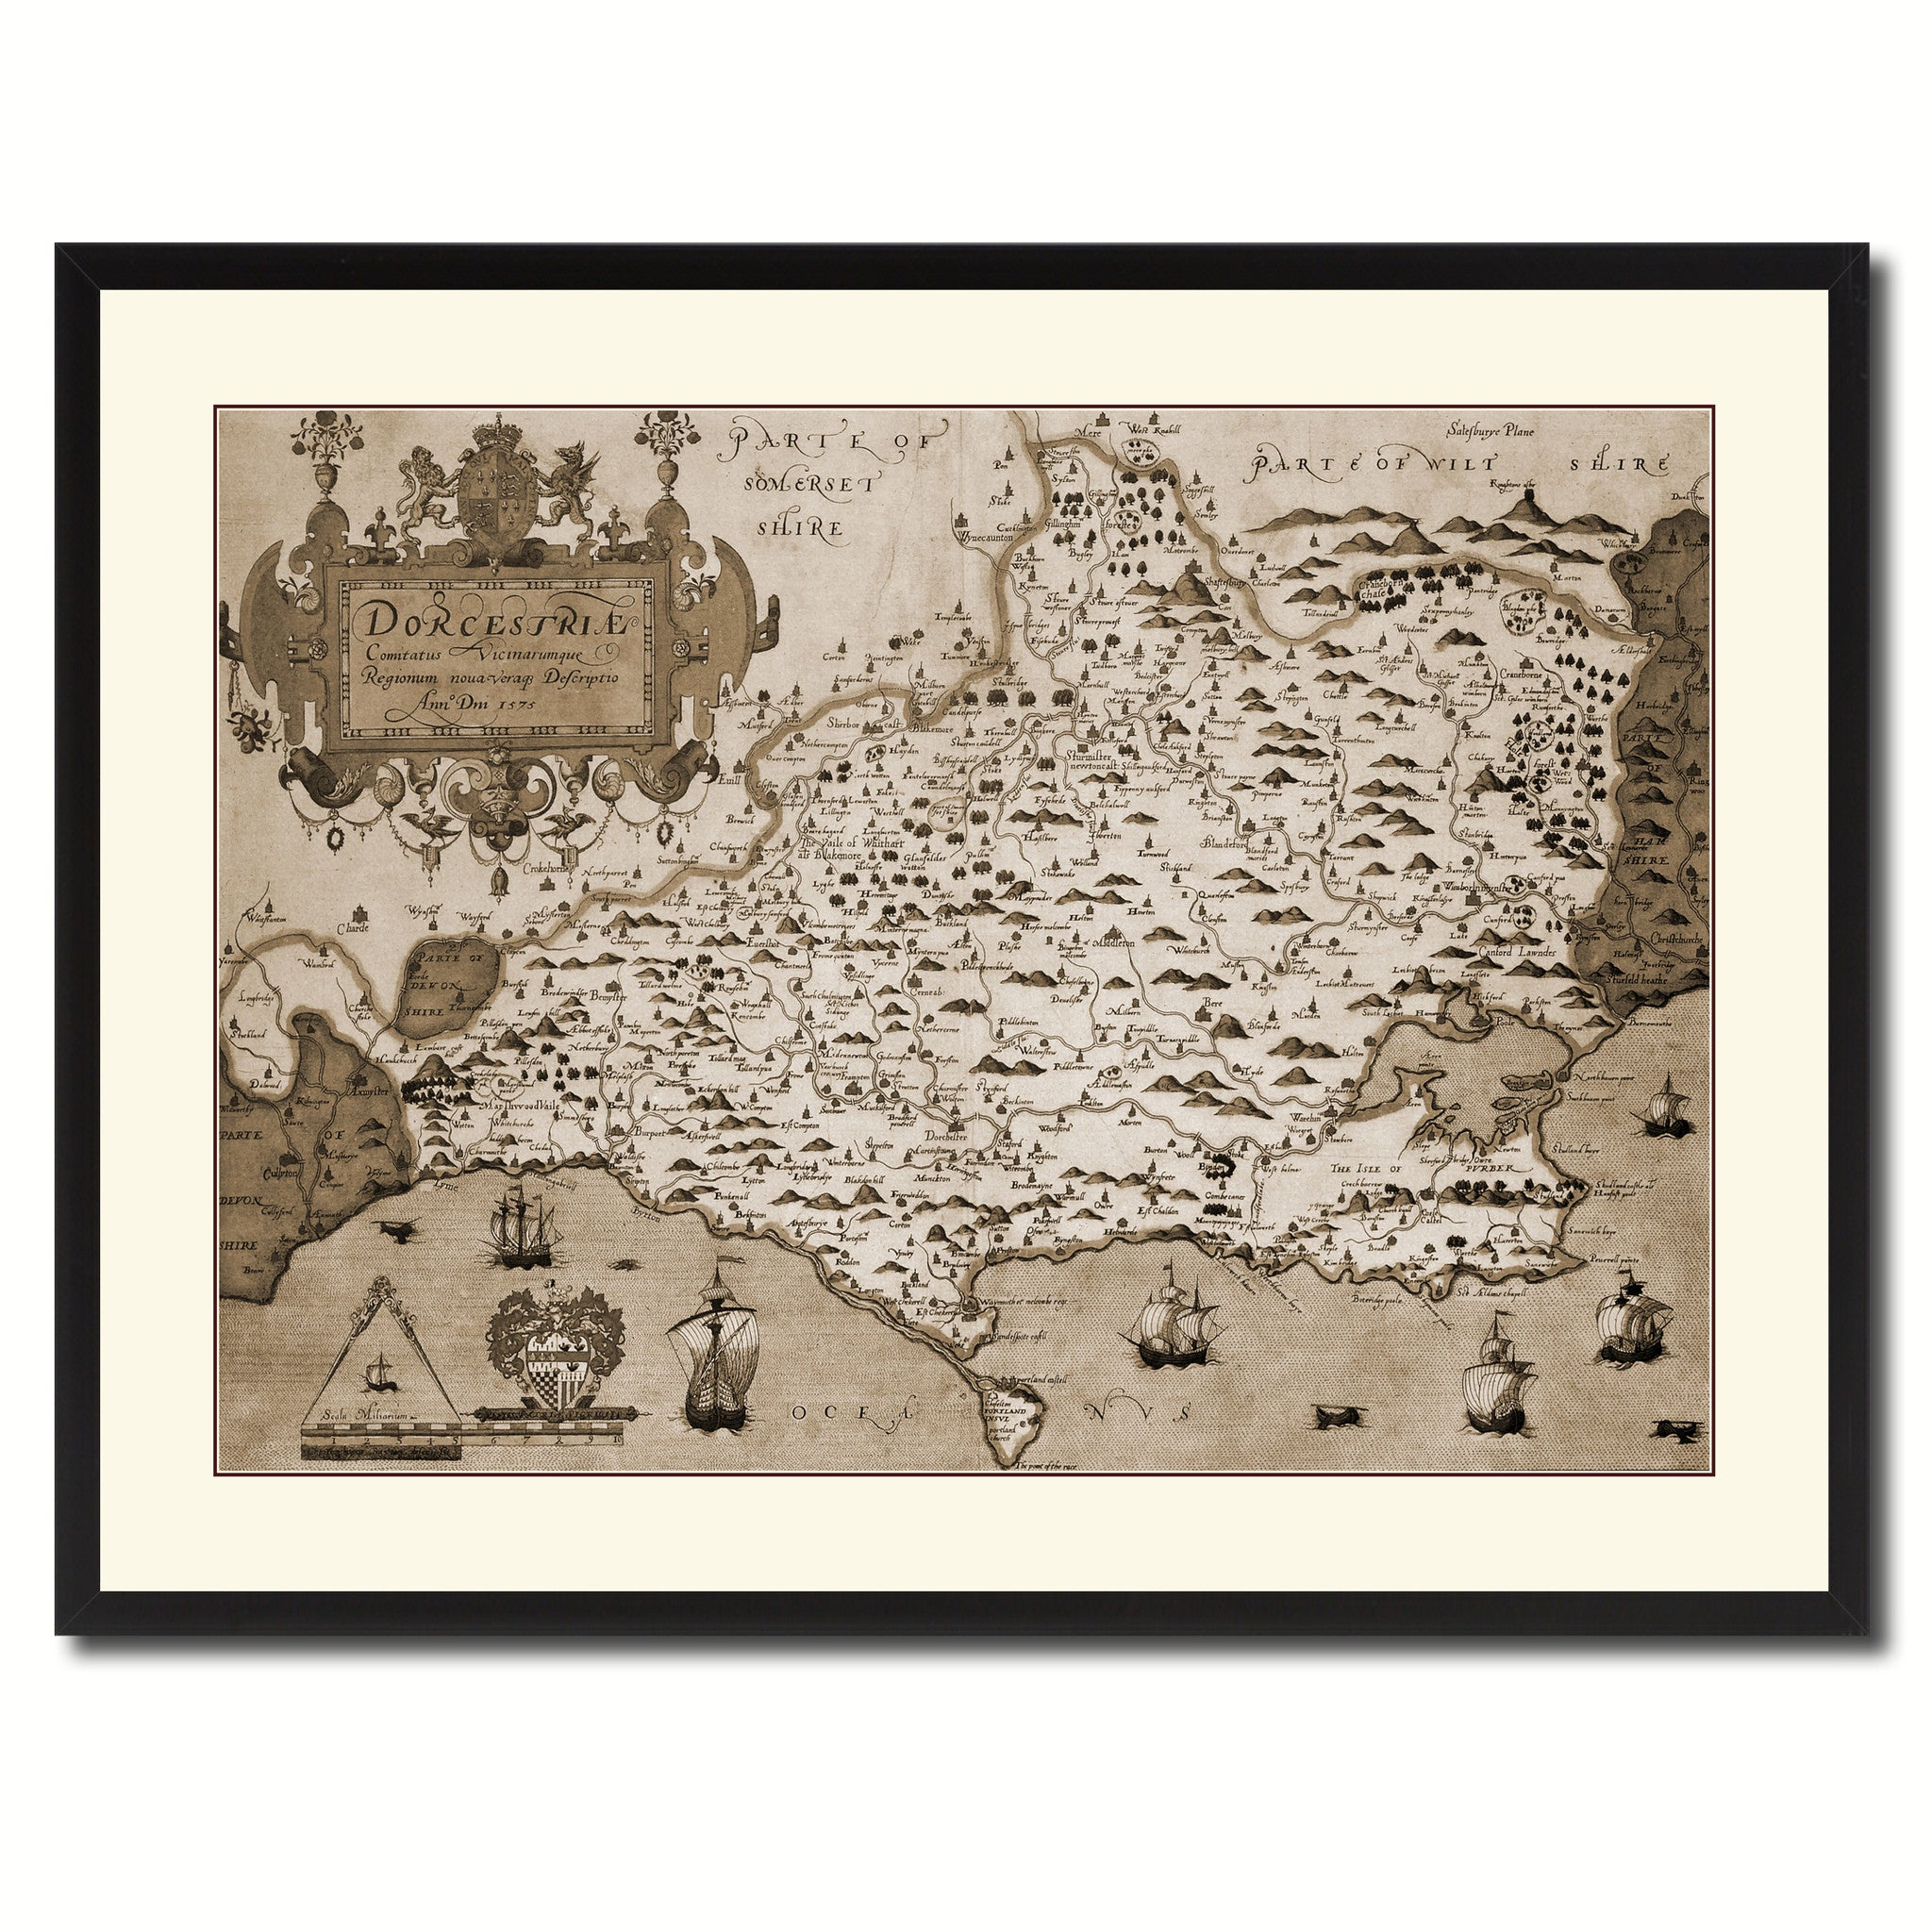 Atlas Of England & Wales Vintage Sepia Map Canvas Print, Picture Frame Gifts Home Decor Wall Art Decoration